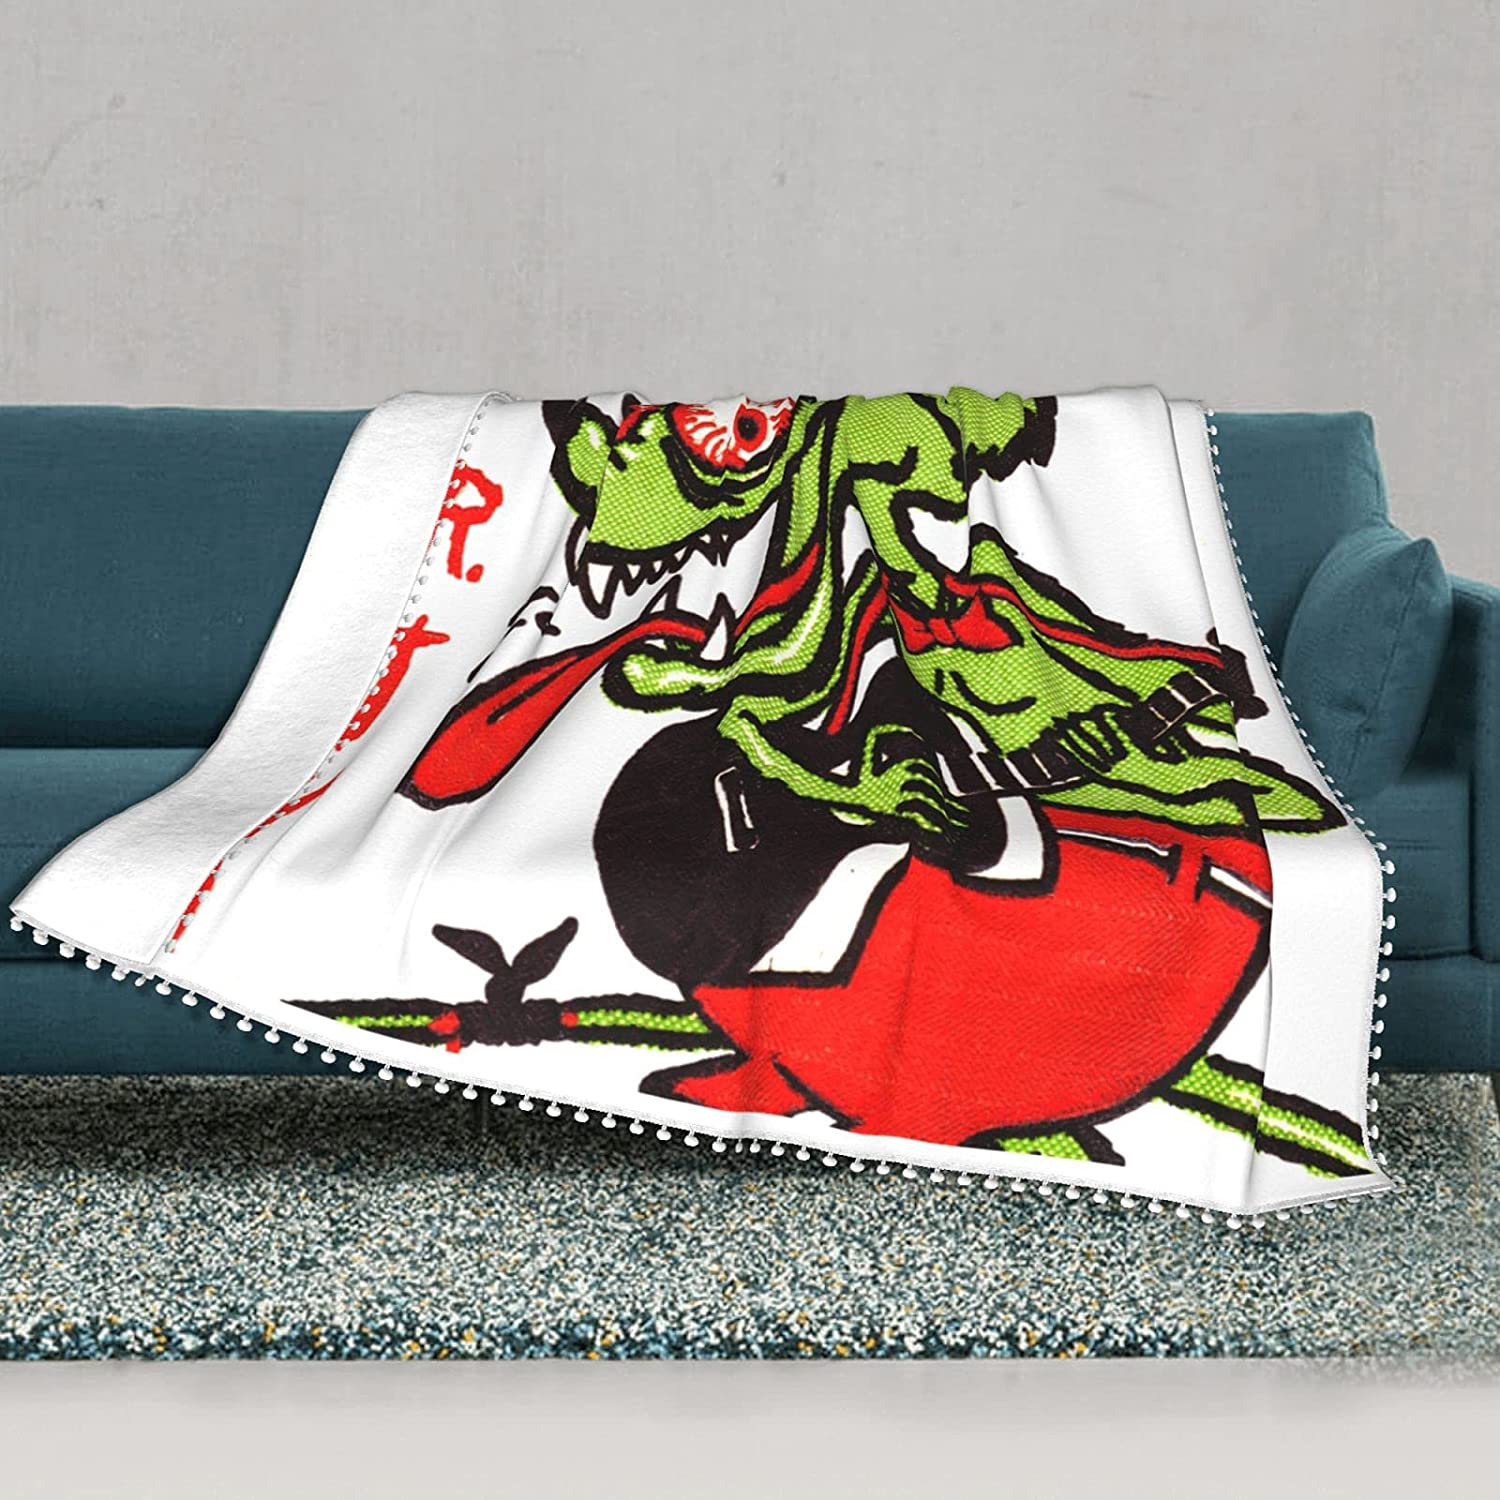 R-at Fink Blanket Outlet ☆ Free Shipping Lightweight Bed Plush S Sales of SALE items from new works Throw Blankets